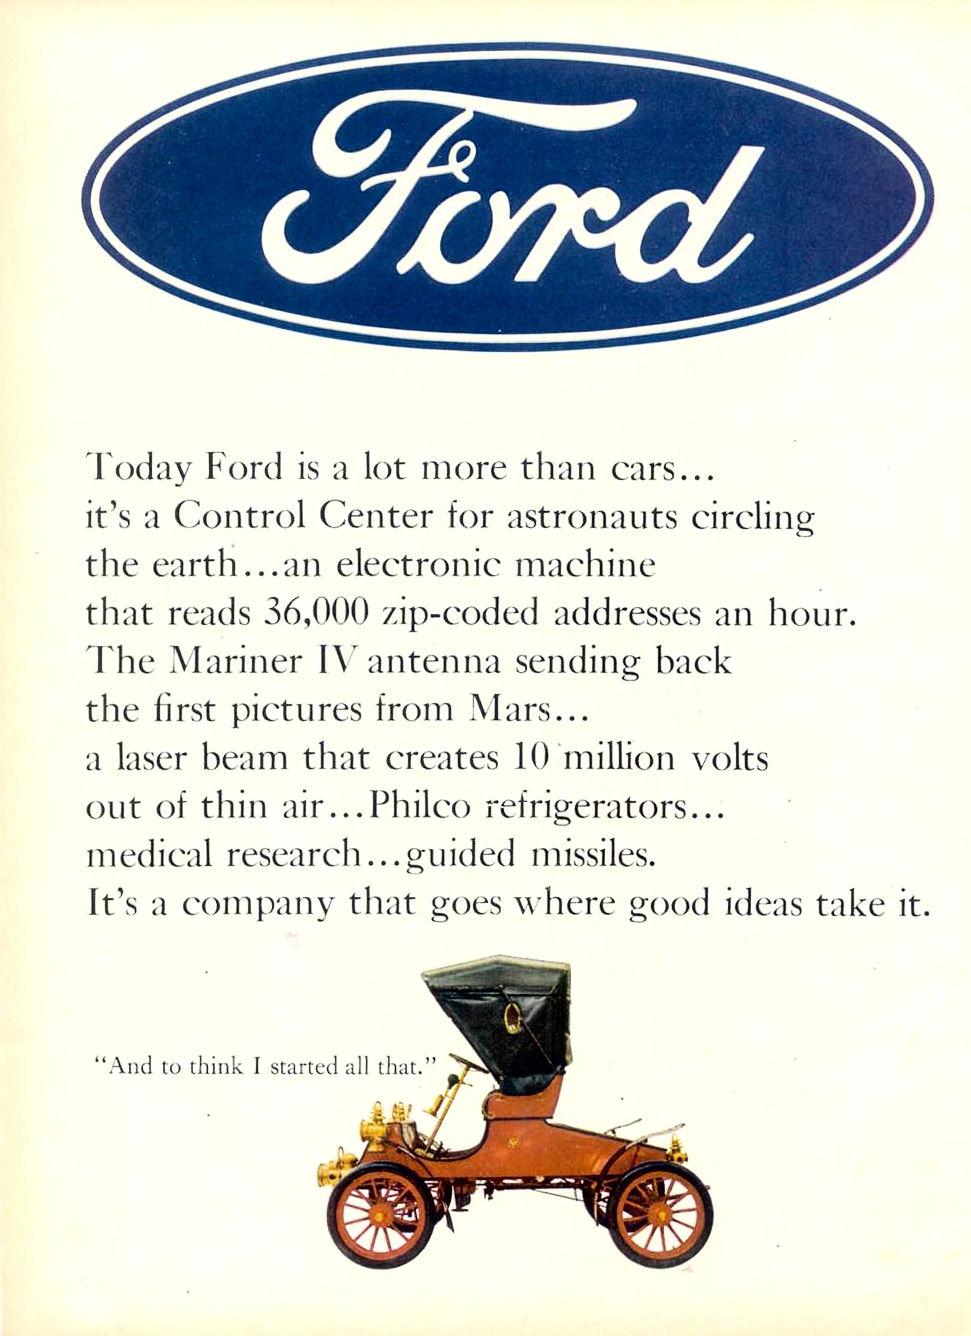 1966 fmc ad 02 for Ford motor company corporate